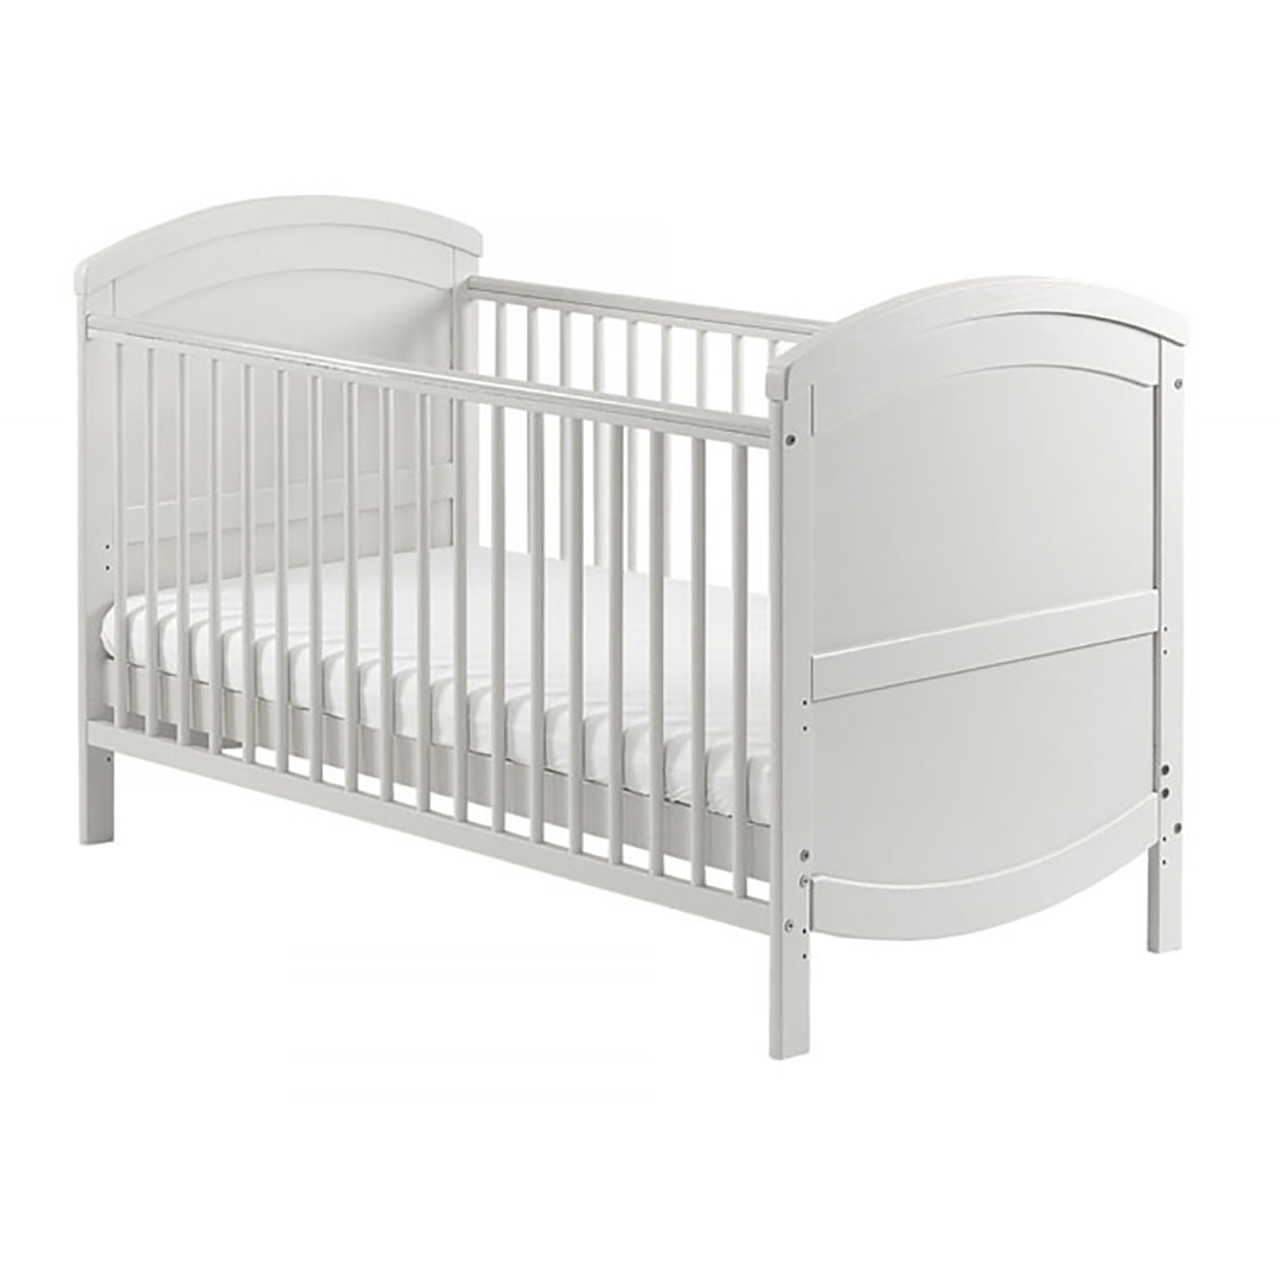 Baby Elegance Crib//Cradle Fitted Sheet Pack of 2, White